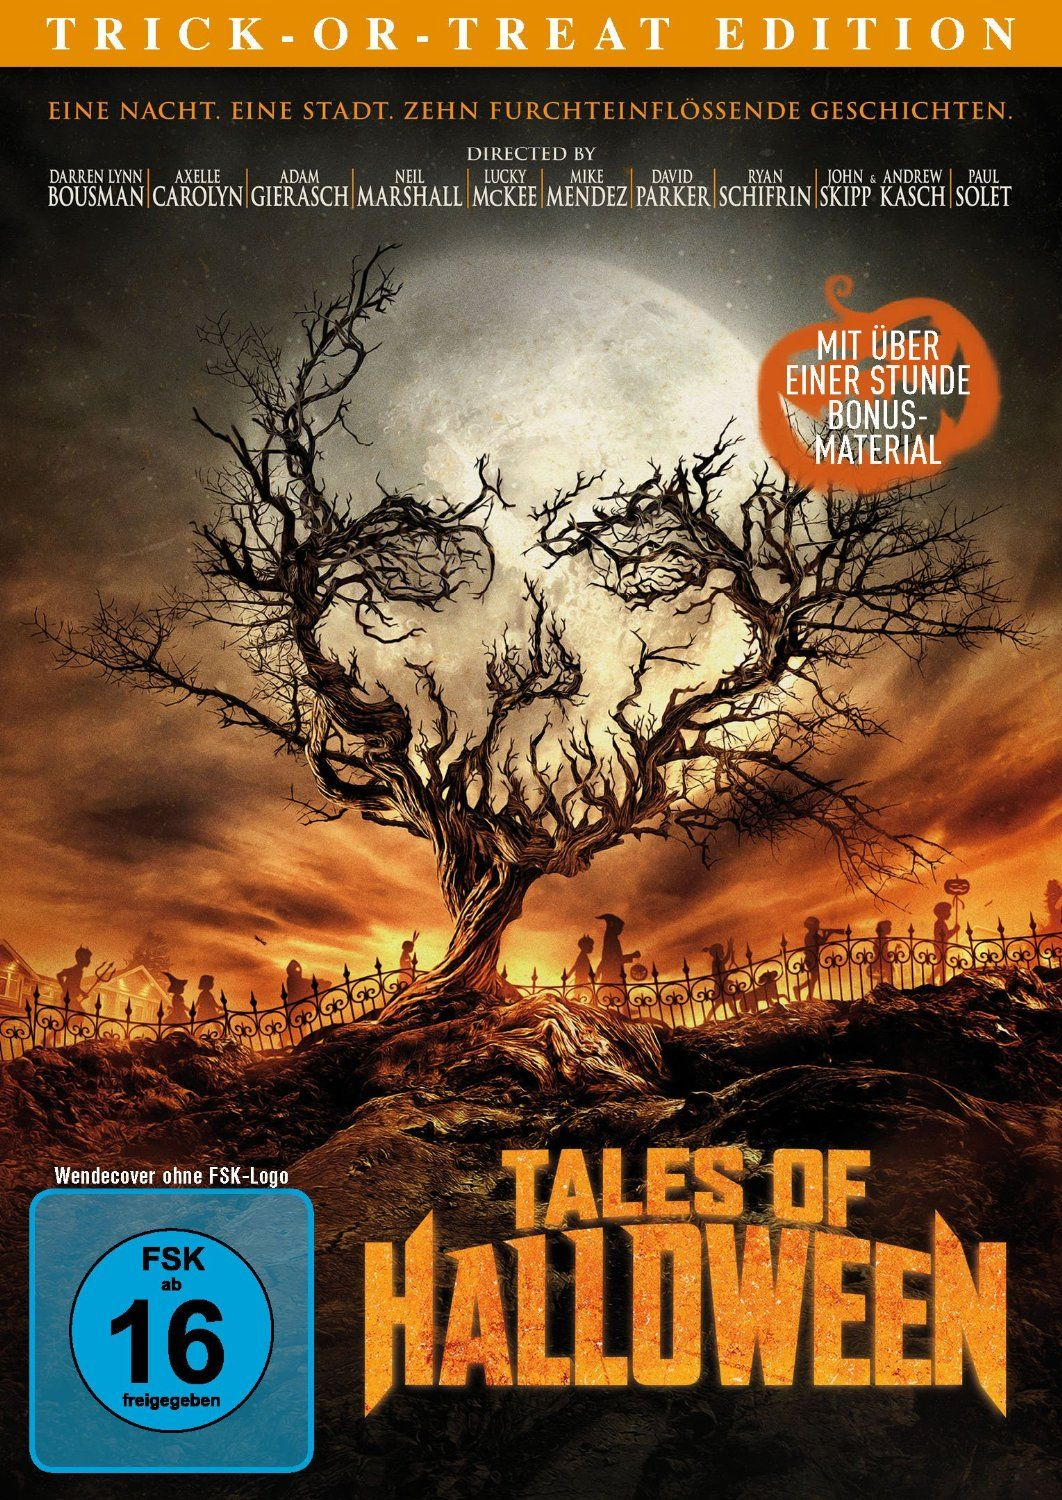 Tales of Halloween (Trick or Treat Edition)